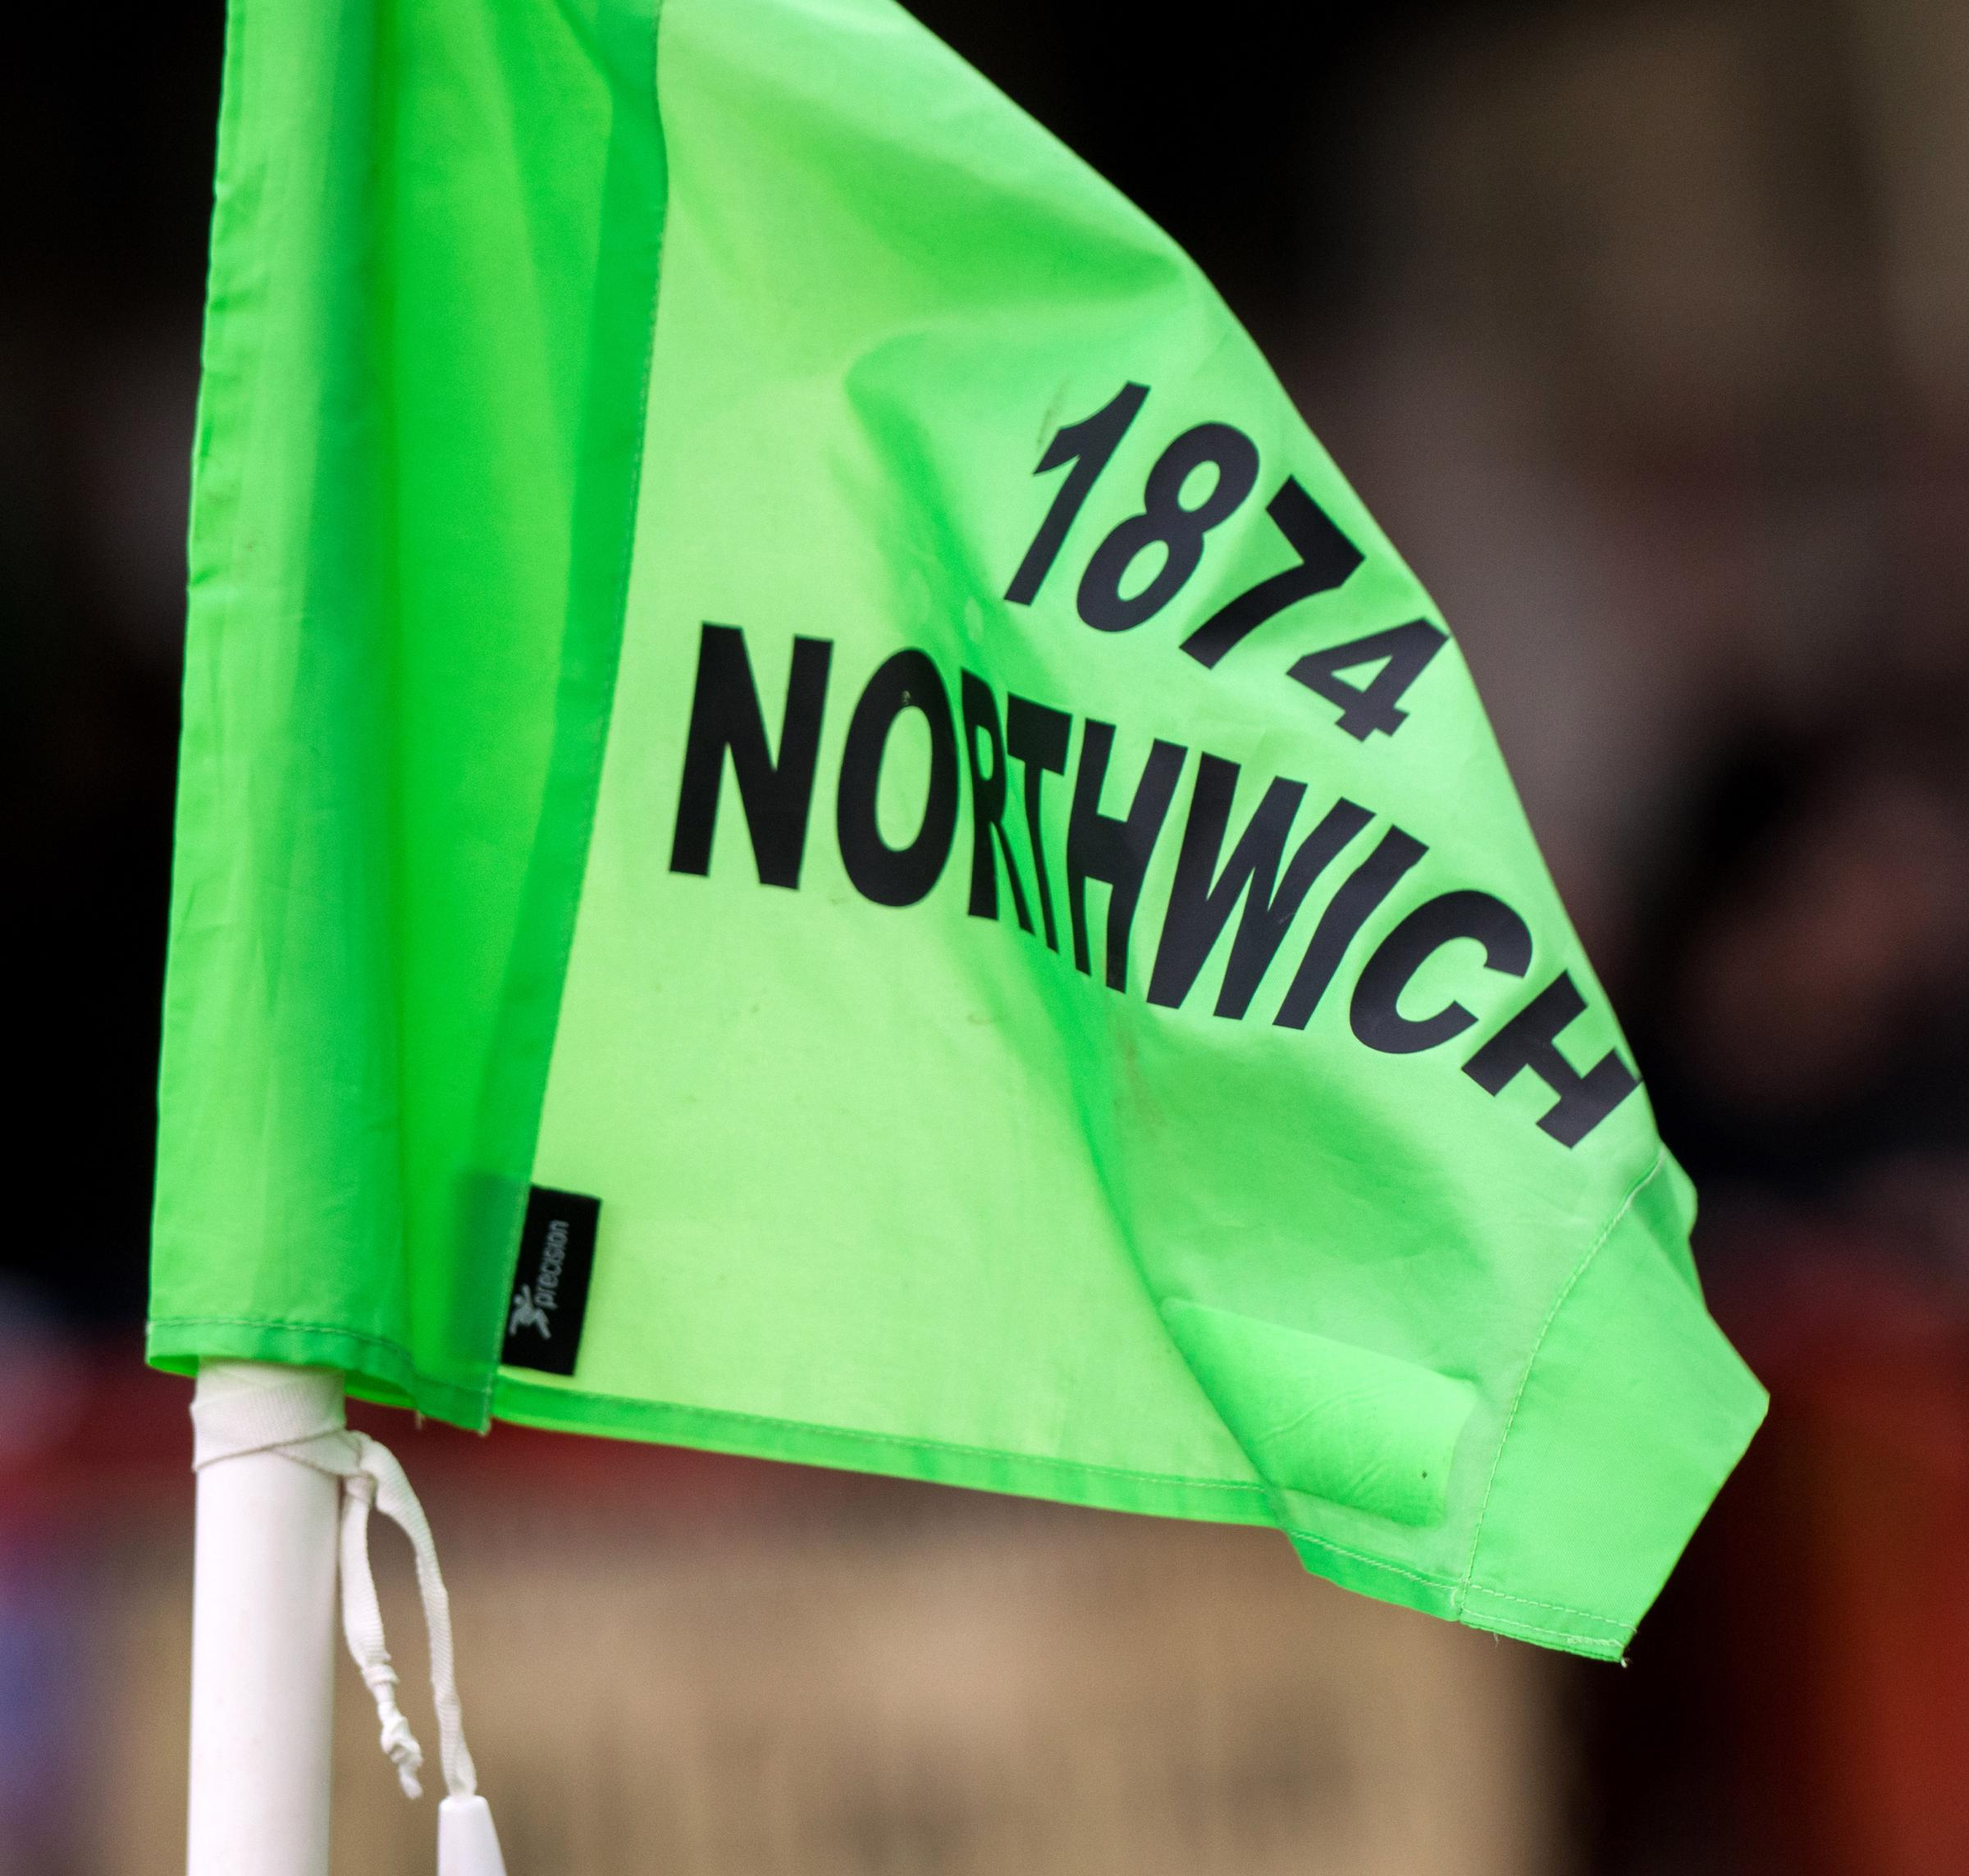 1874 Northwich's board have said they will continue talks with Cheshire FA about becoming tenants at a new multi-million pound football facility even though its proposed location has changed